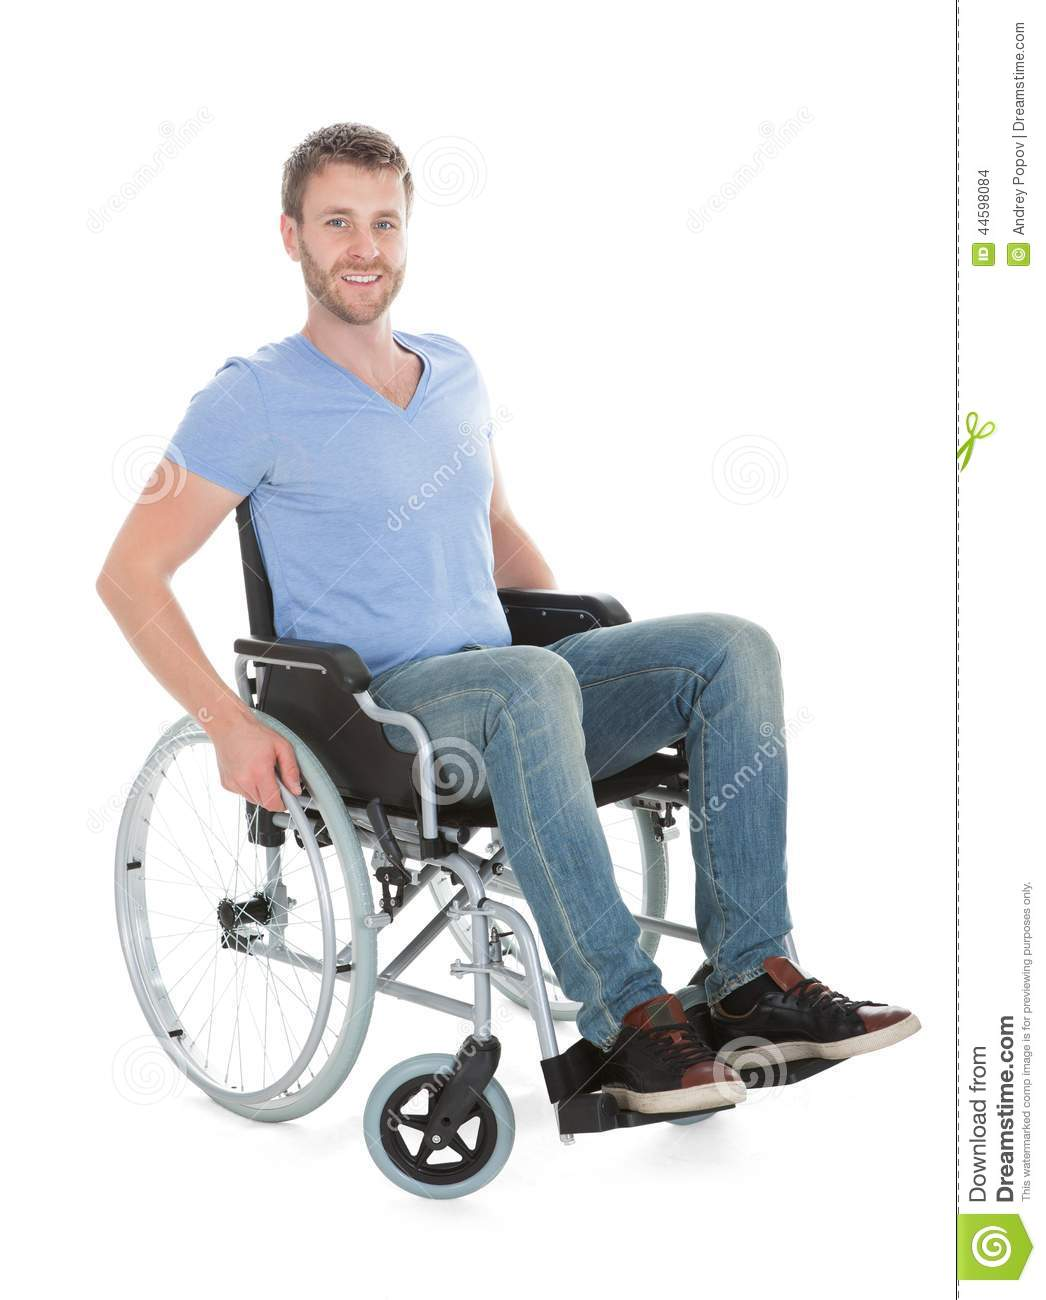 Disabled man in a wheelchair stock image cartoondealer for Sedia a rotelle cartoon